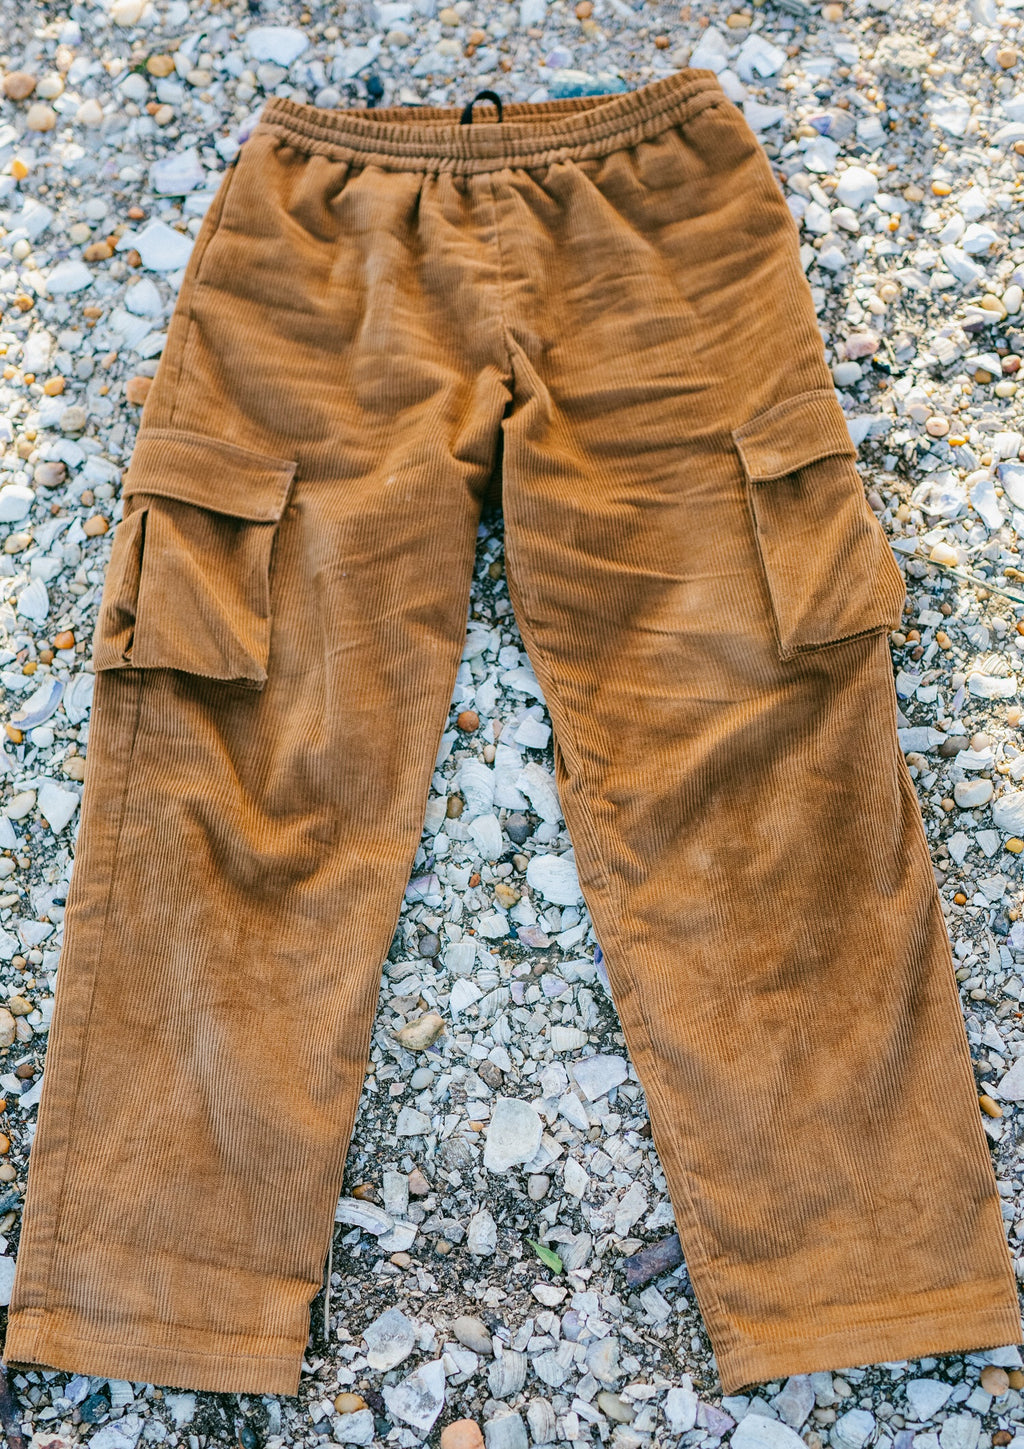 MINE 77 x PAT'S PANTS.